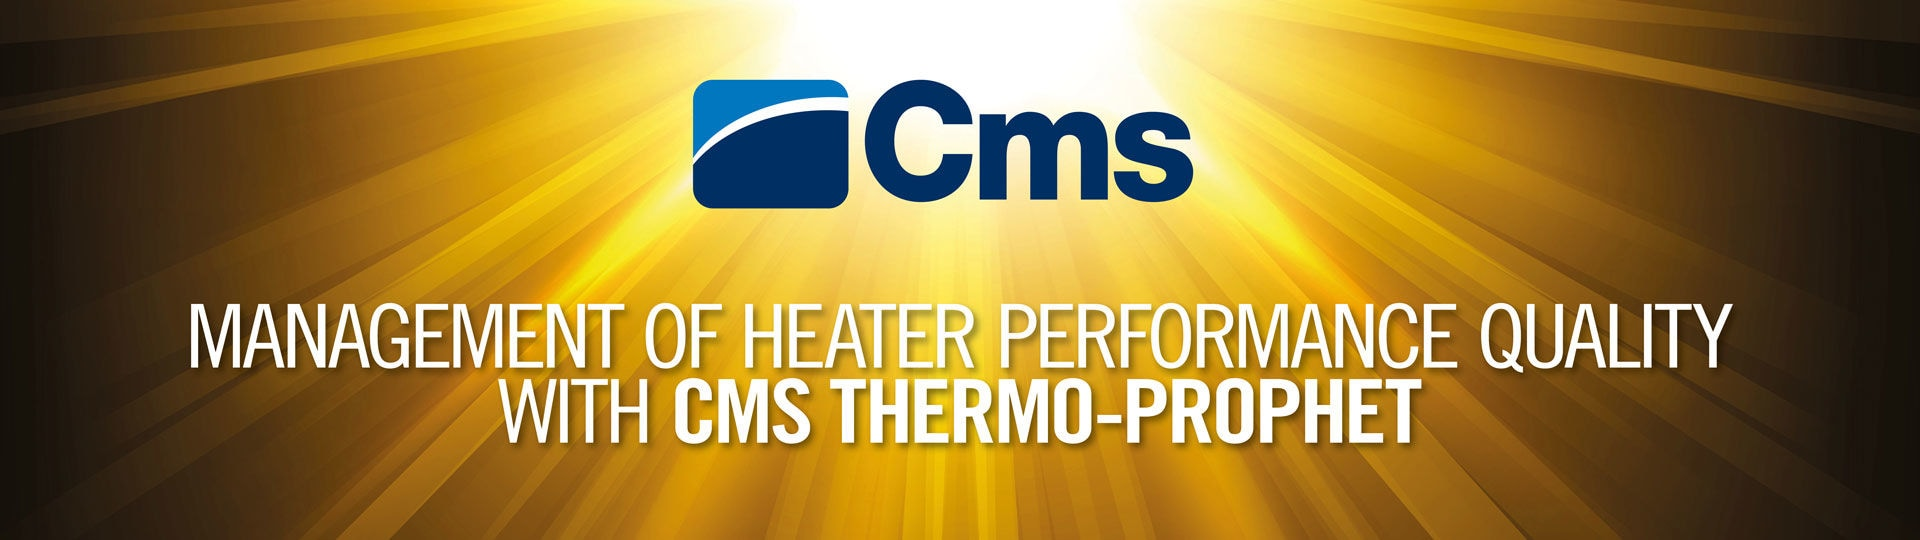 Management of heater performance quality with CMS Thermo-Prophet